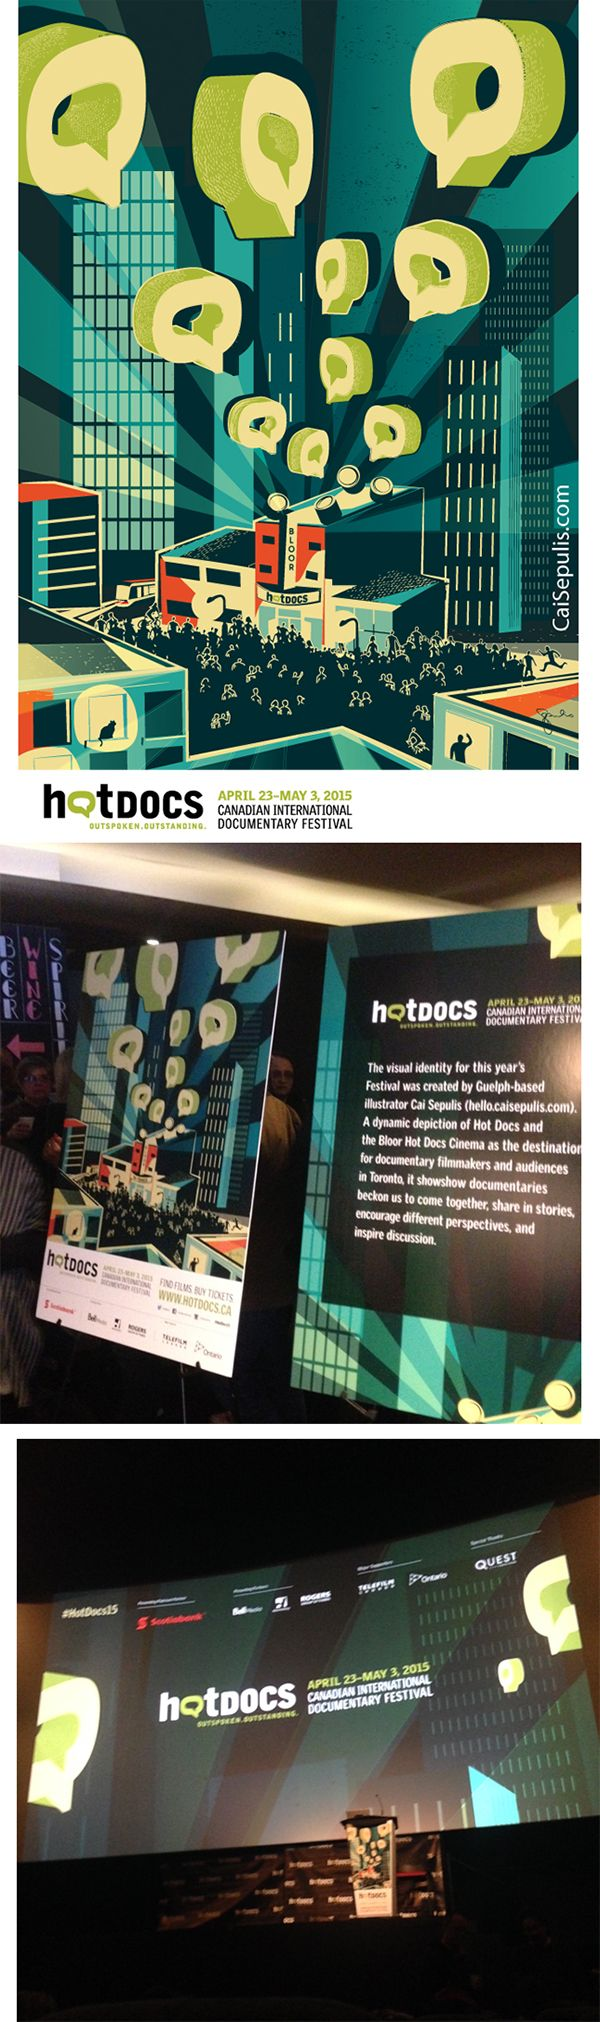 Poster design documentary - Poster Illustration And Design By Cai Sepulis For 2015 Hotdocs Documentary Film Festival In Toronto